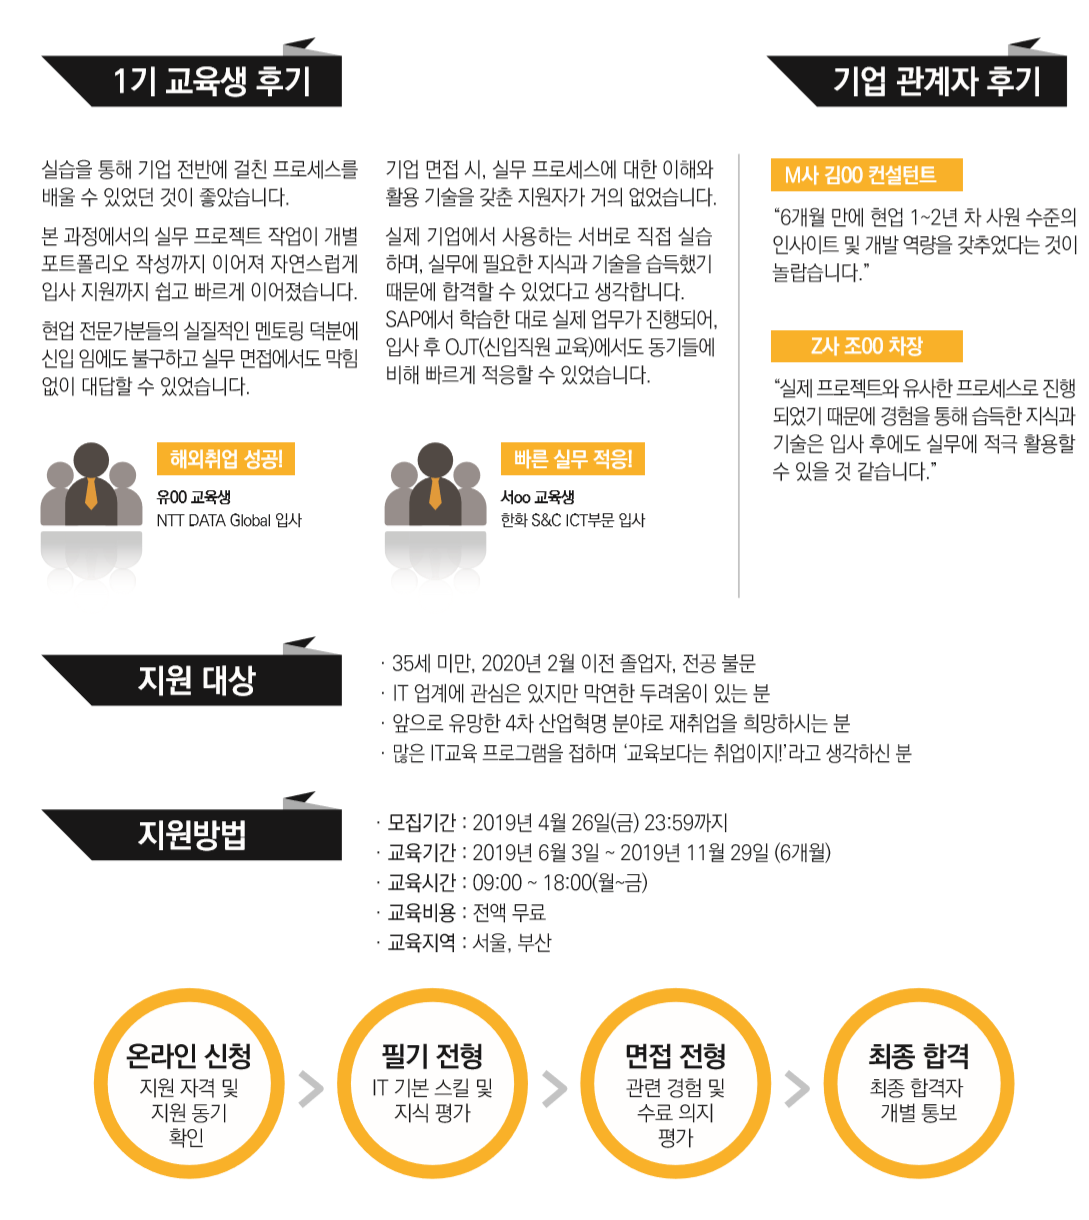 https://saptraining.co.kr/userfiles/sap_curriculum/0404_eDM용_3(1).PNG